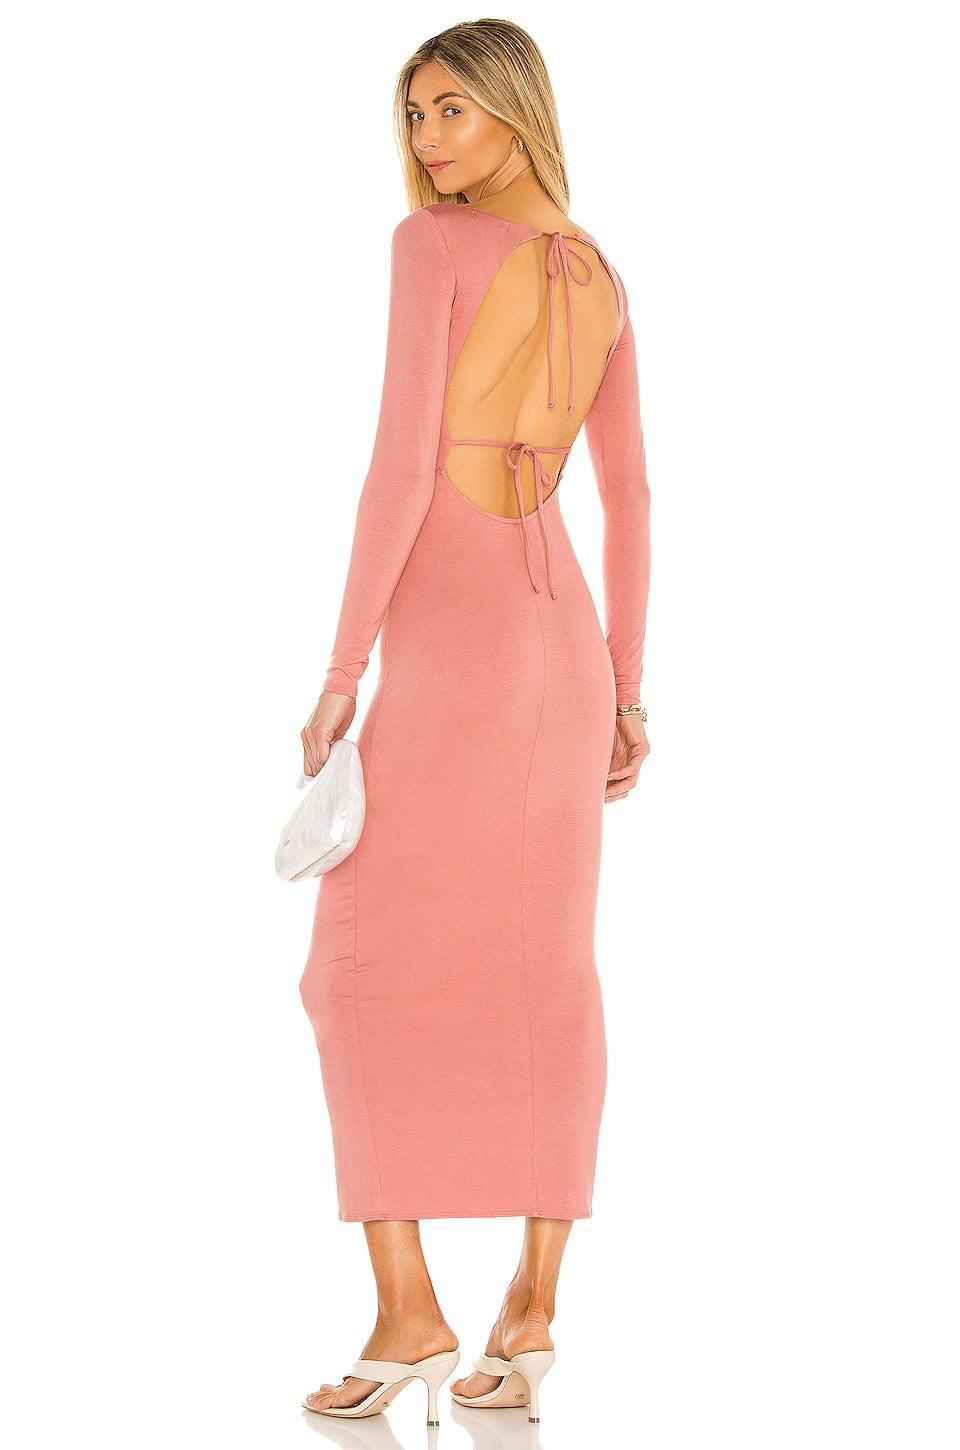 <p>The <span>Lovers + Friends Oaklee Dress in Rose Pink</span> ($78, originally $188) is such a vibe for the fall. The blush pink hue is too cute to handle and the open back adds a sexy touch. </p>